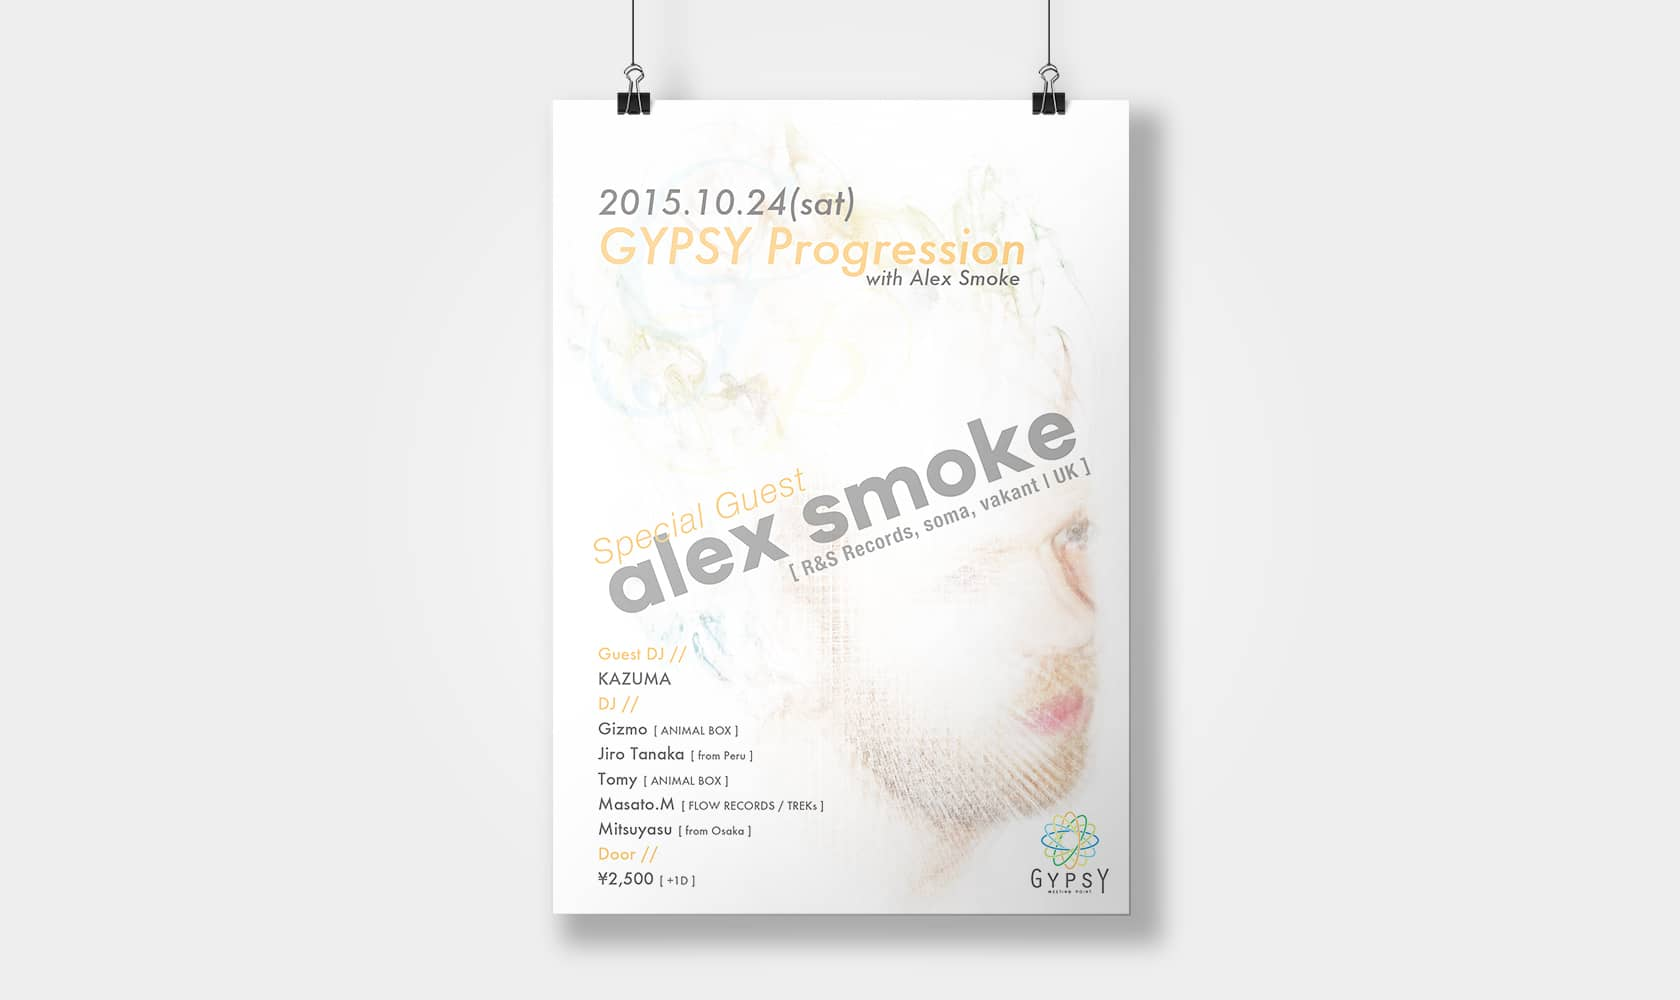 GYPSY PROGRESSION with Alex Smoke 2015.10.24